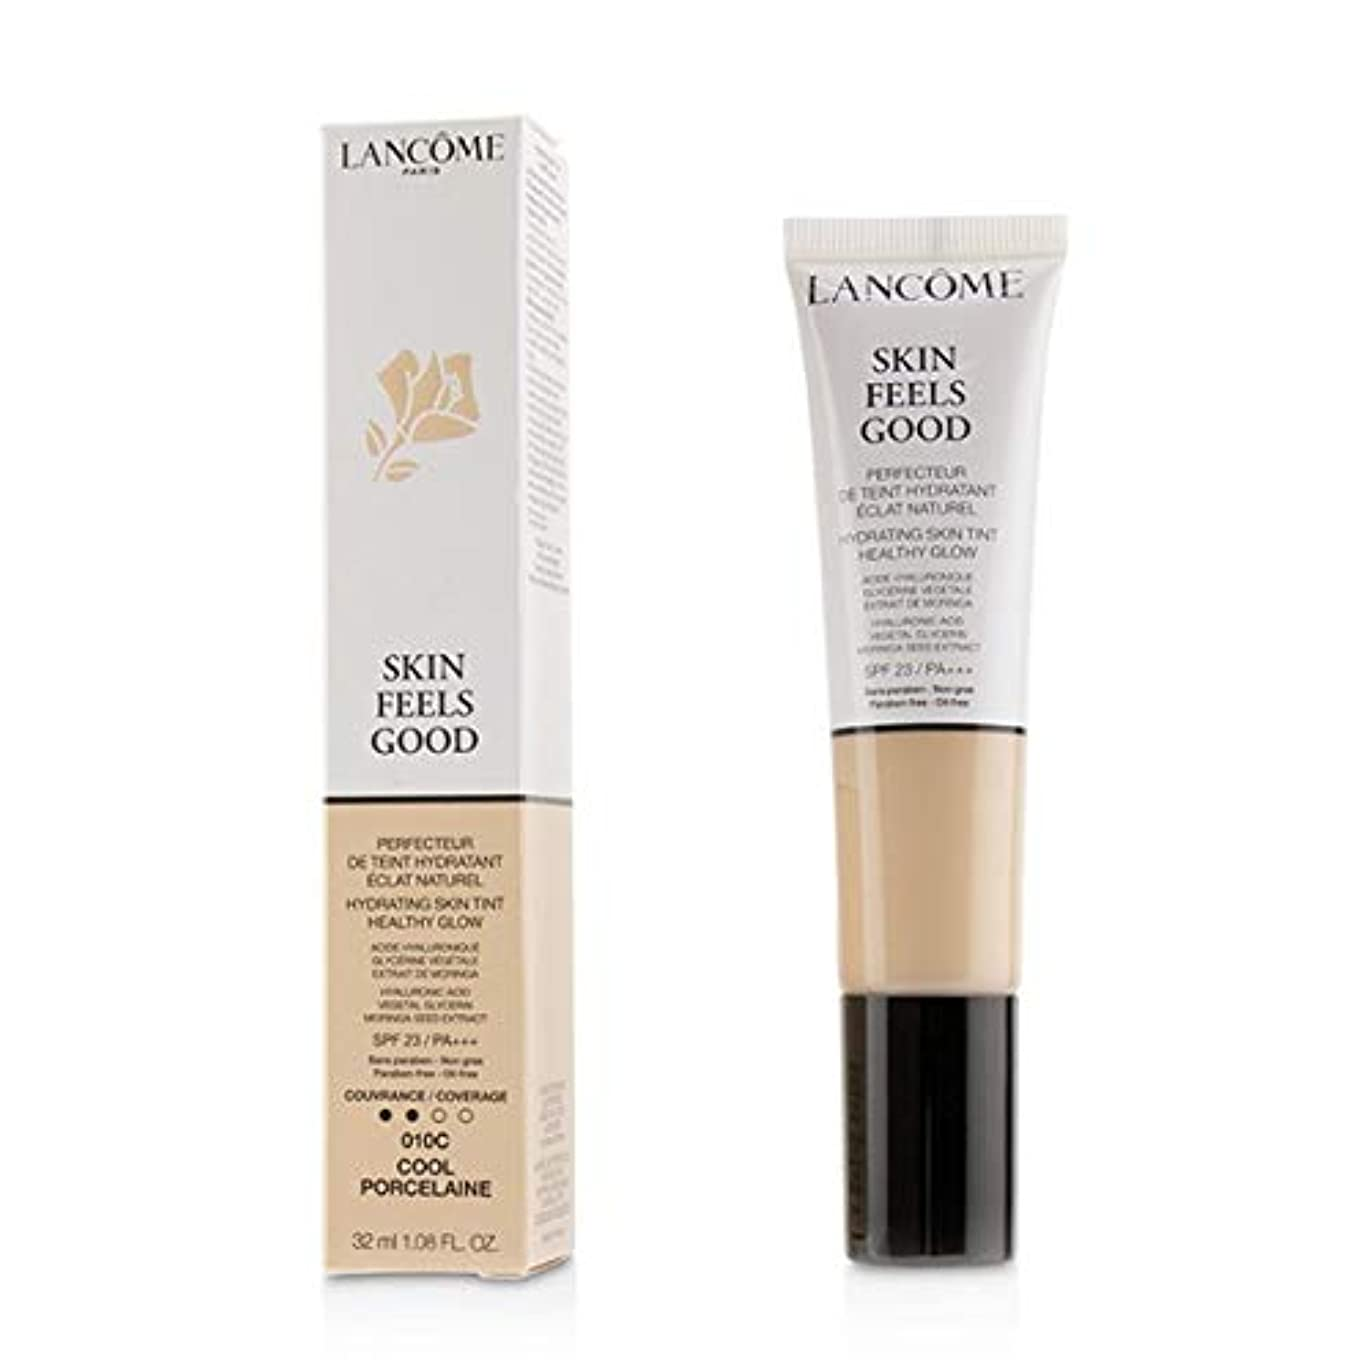 望ましいドループおランコム Skin Feels Good Hydrating Skin Tint Healthy Glow SPF 23 - # 010C Cool Porcelaine 32ml/1.08oz並行輸入品